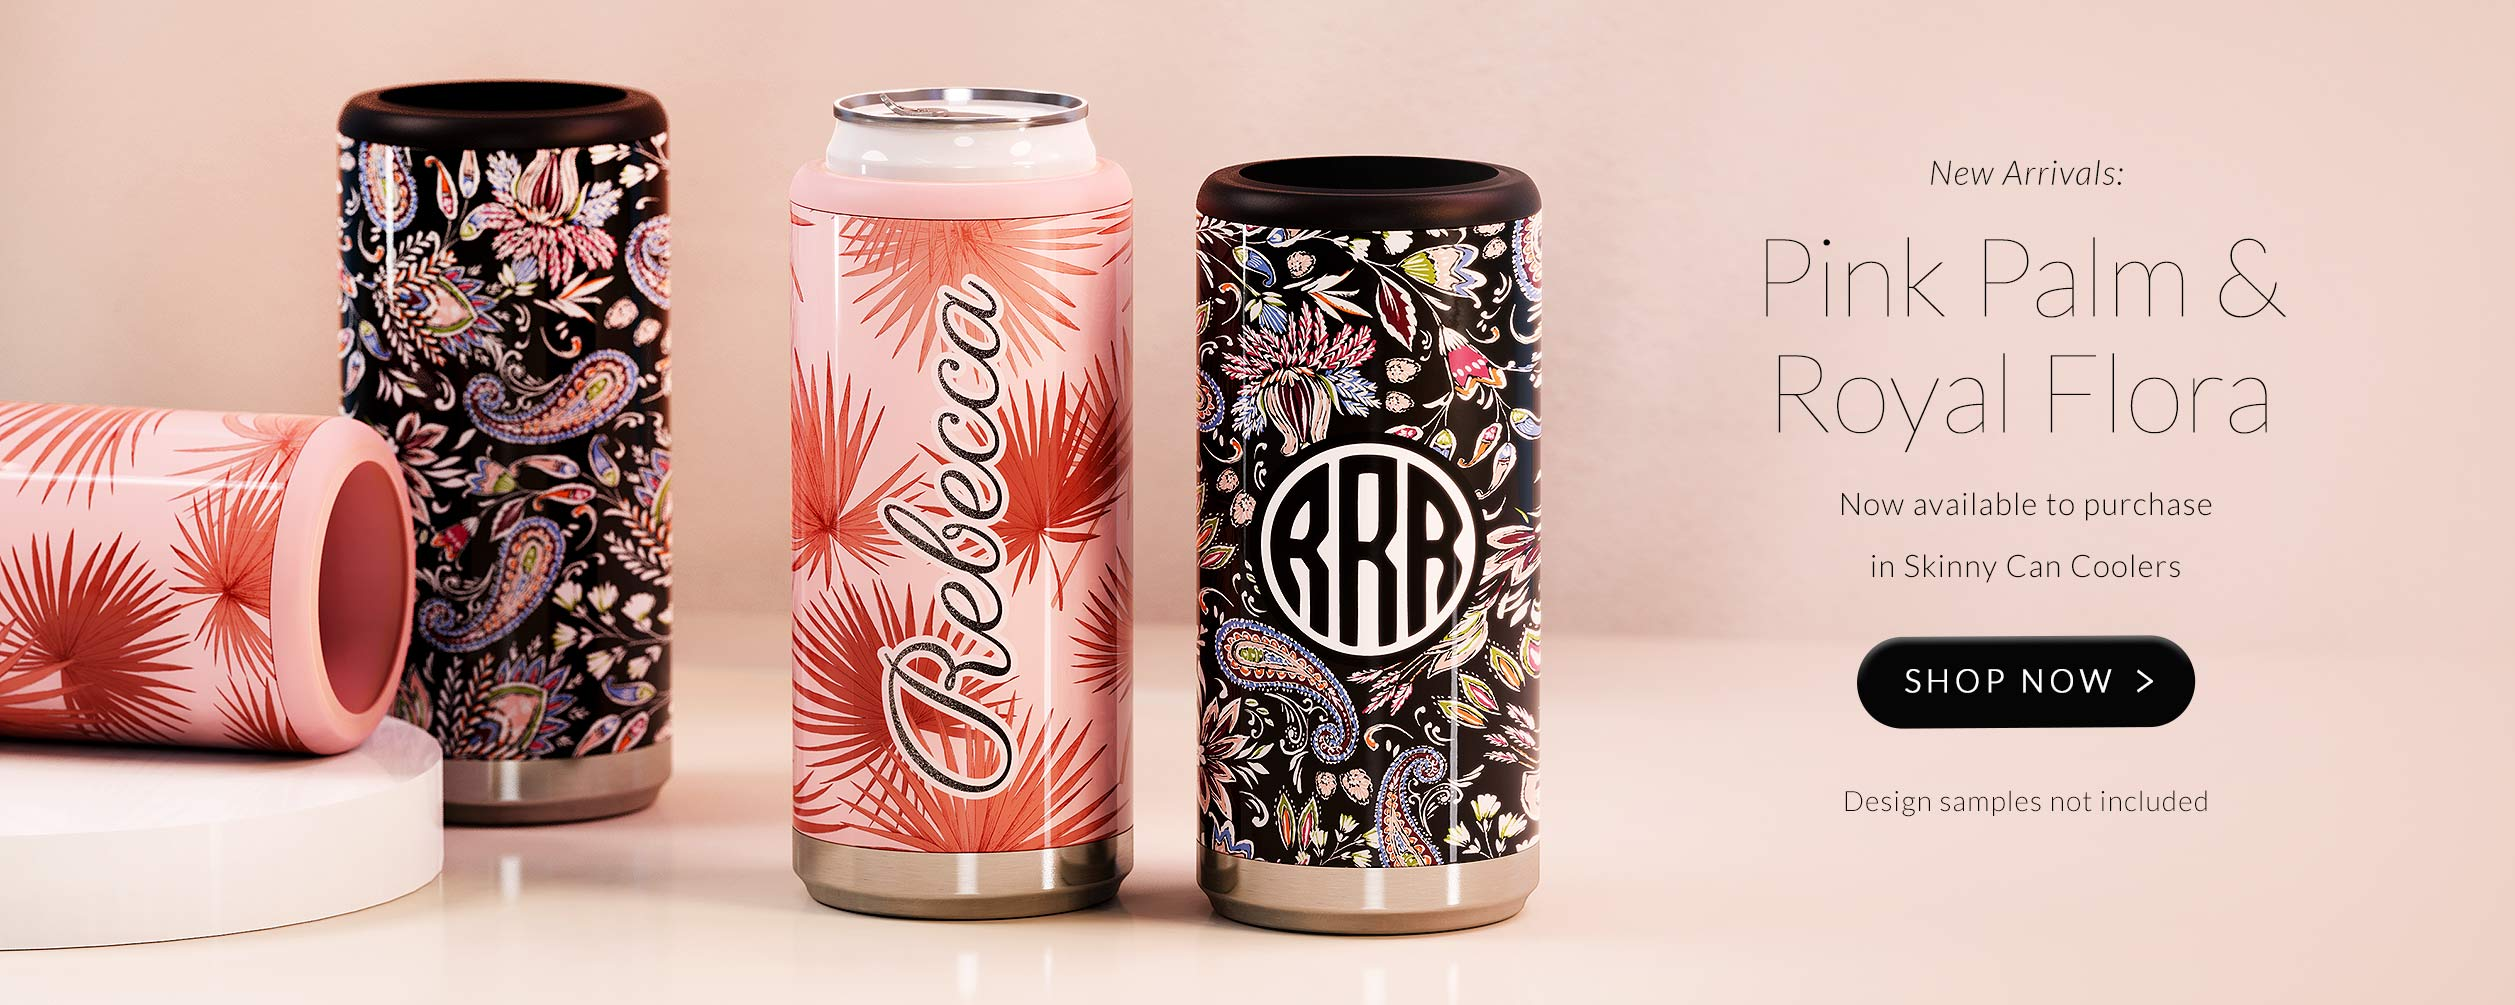 Launch page for our newest Skinny Can Cooler prints - Royal Flora and Pink Palms. Intricate paisley print and refreshing summer palms. Shop Now.